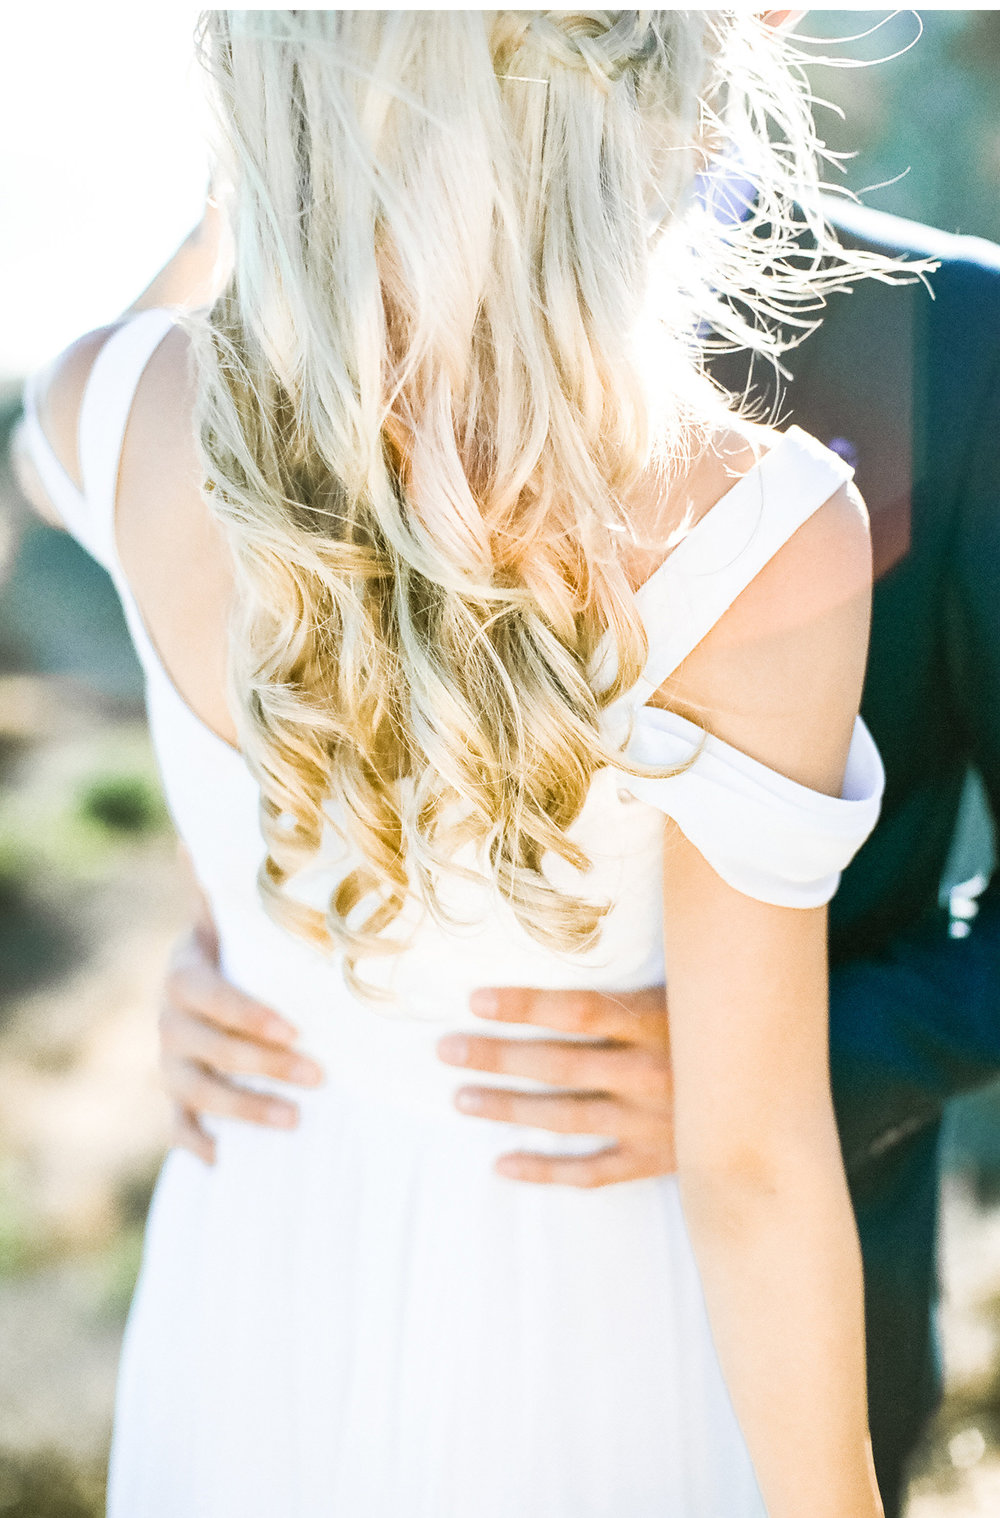 Style-Me-Pretty-Malibu-Wedding-Natalie-Schutt-Photography_04.jpg